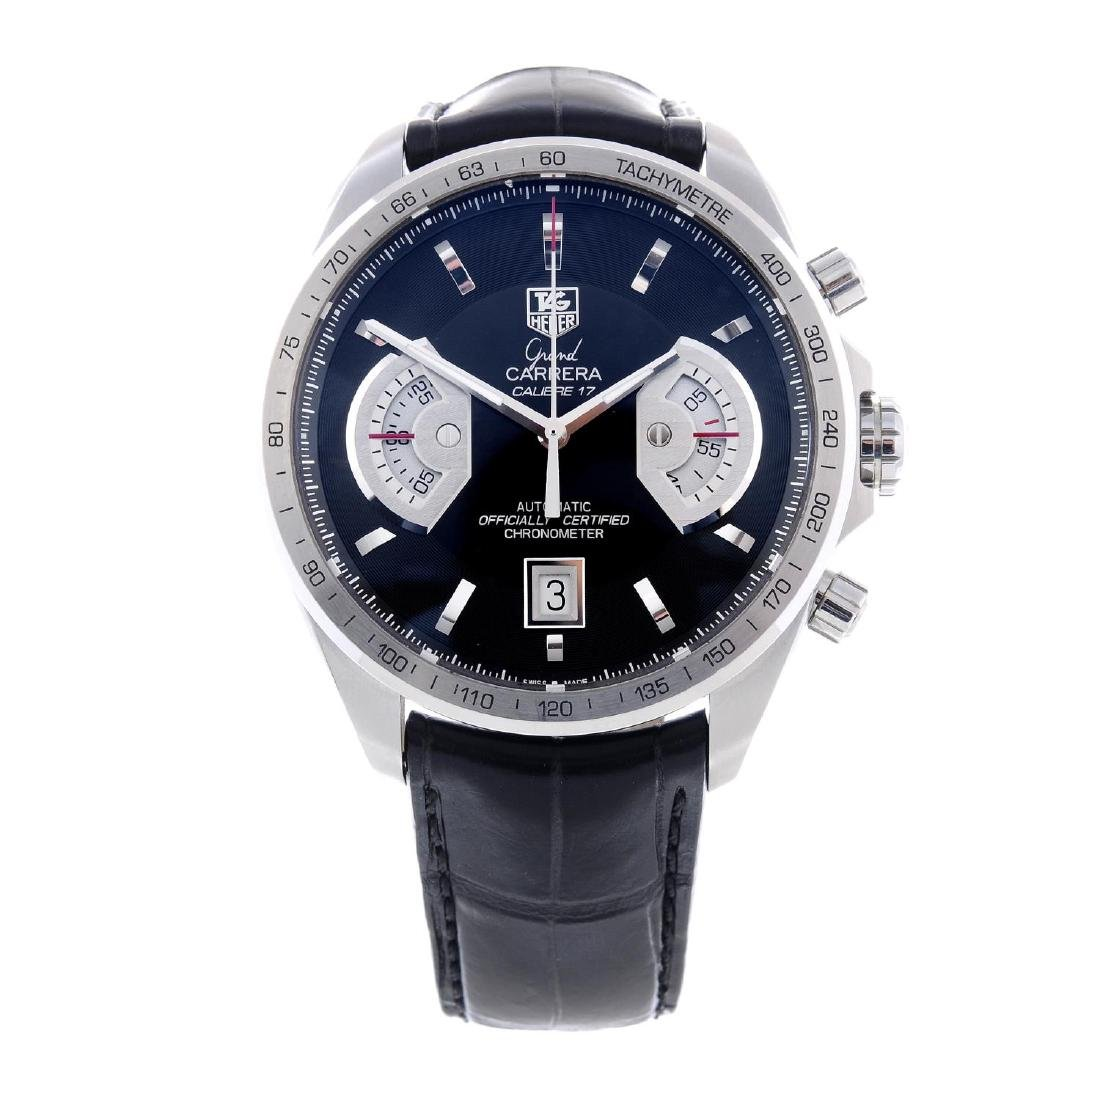 TAG HEUER - a gentleman's Grand Carrera Calibre 17